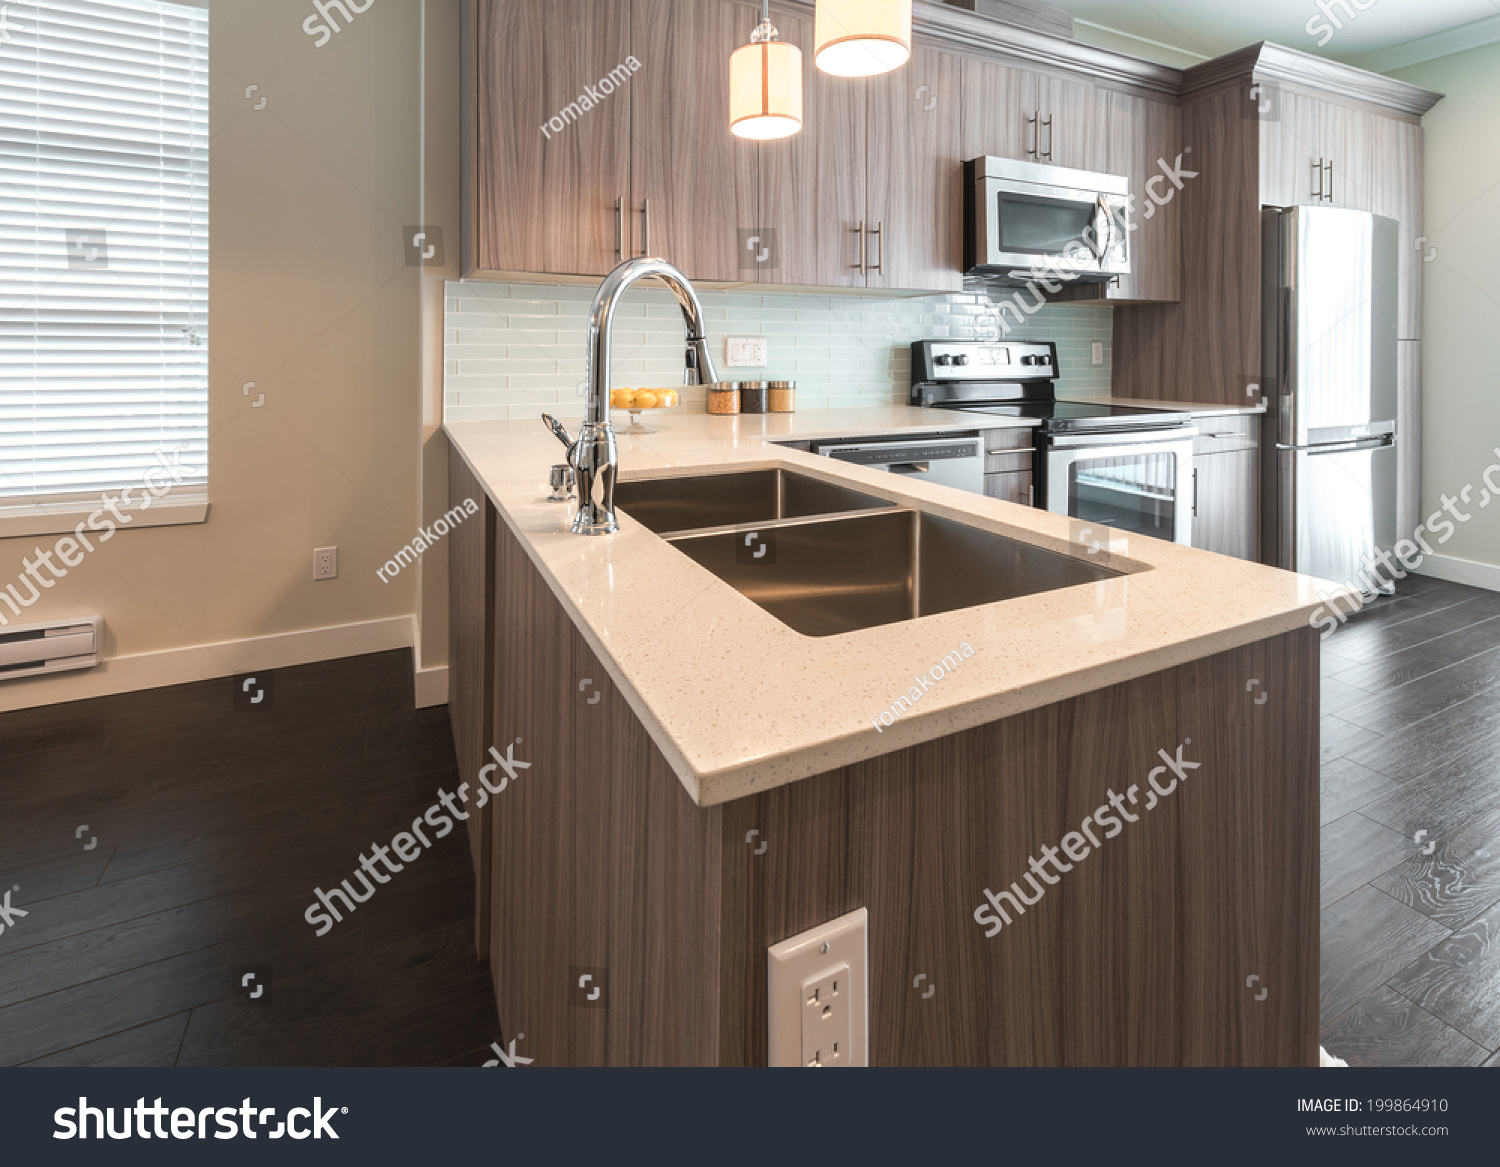 View outlook at the luxury nicely decorated modern kitchen interior design of a brand